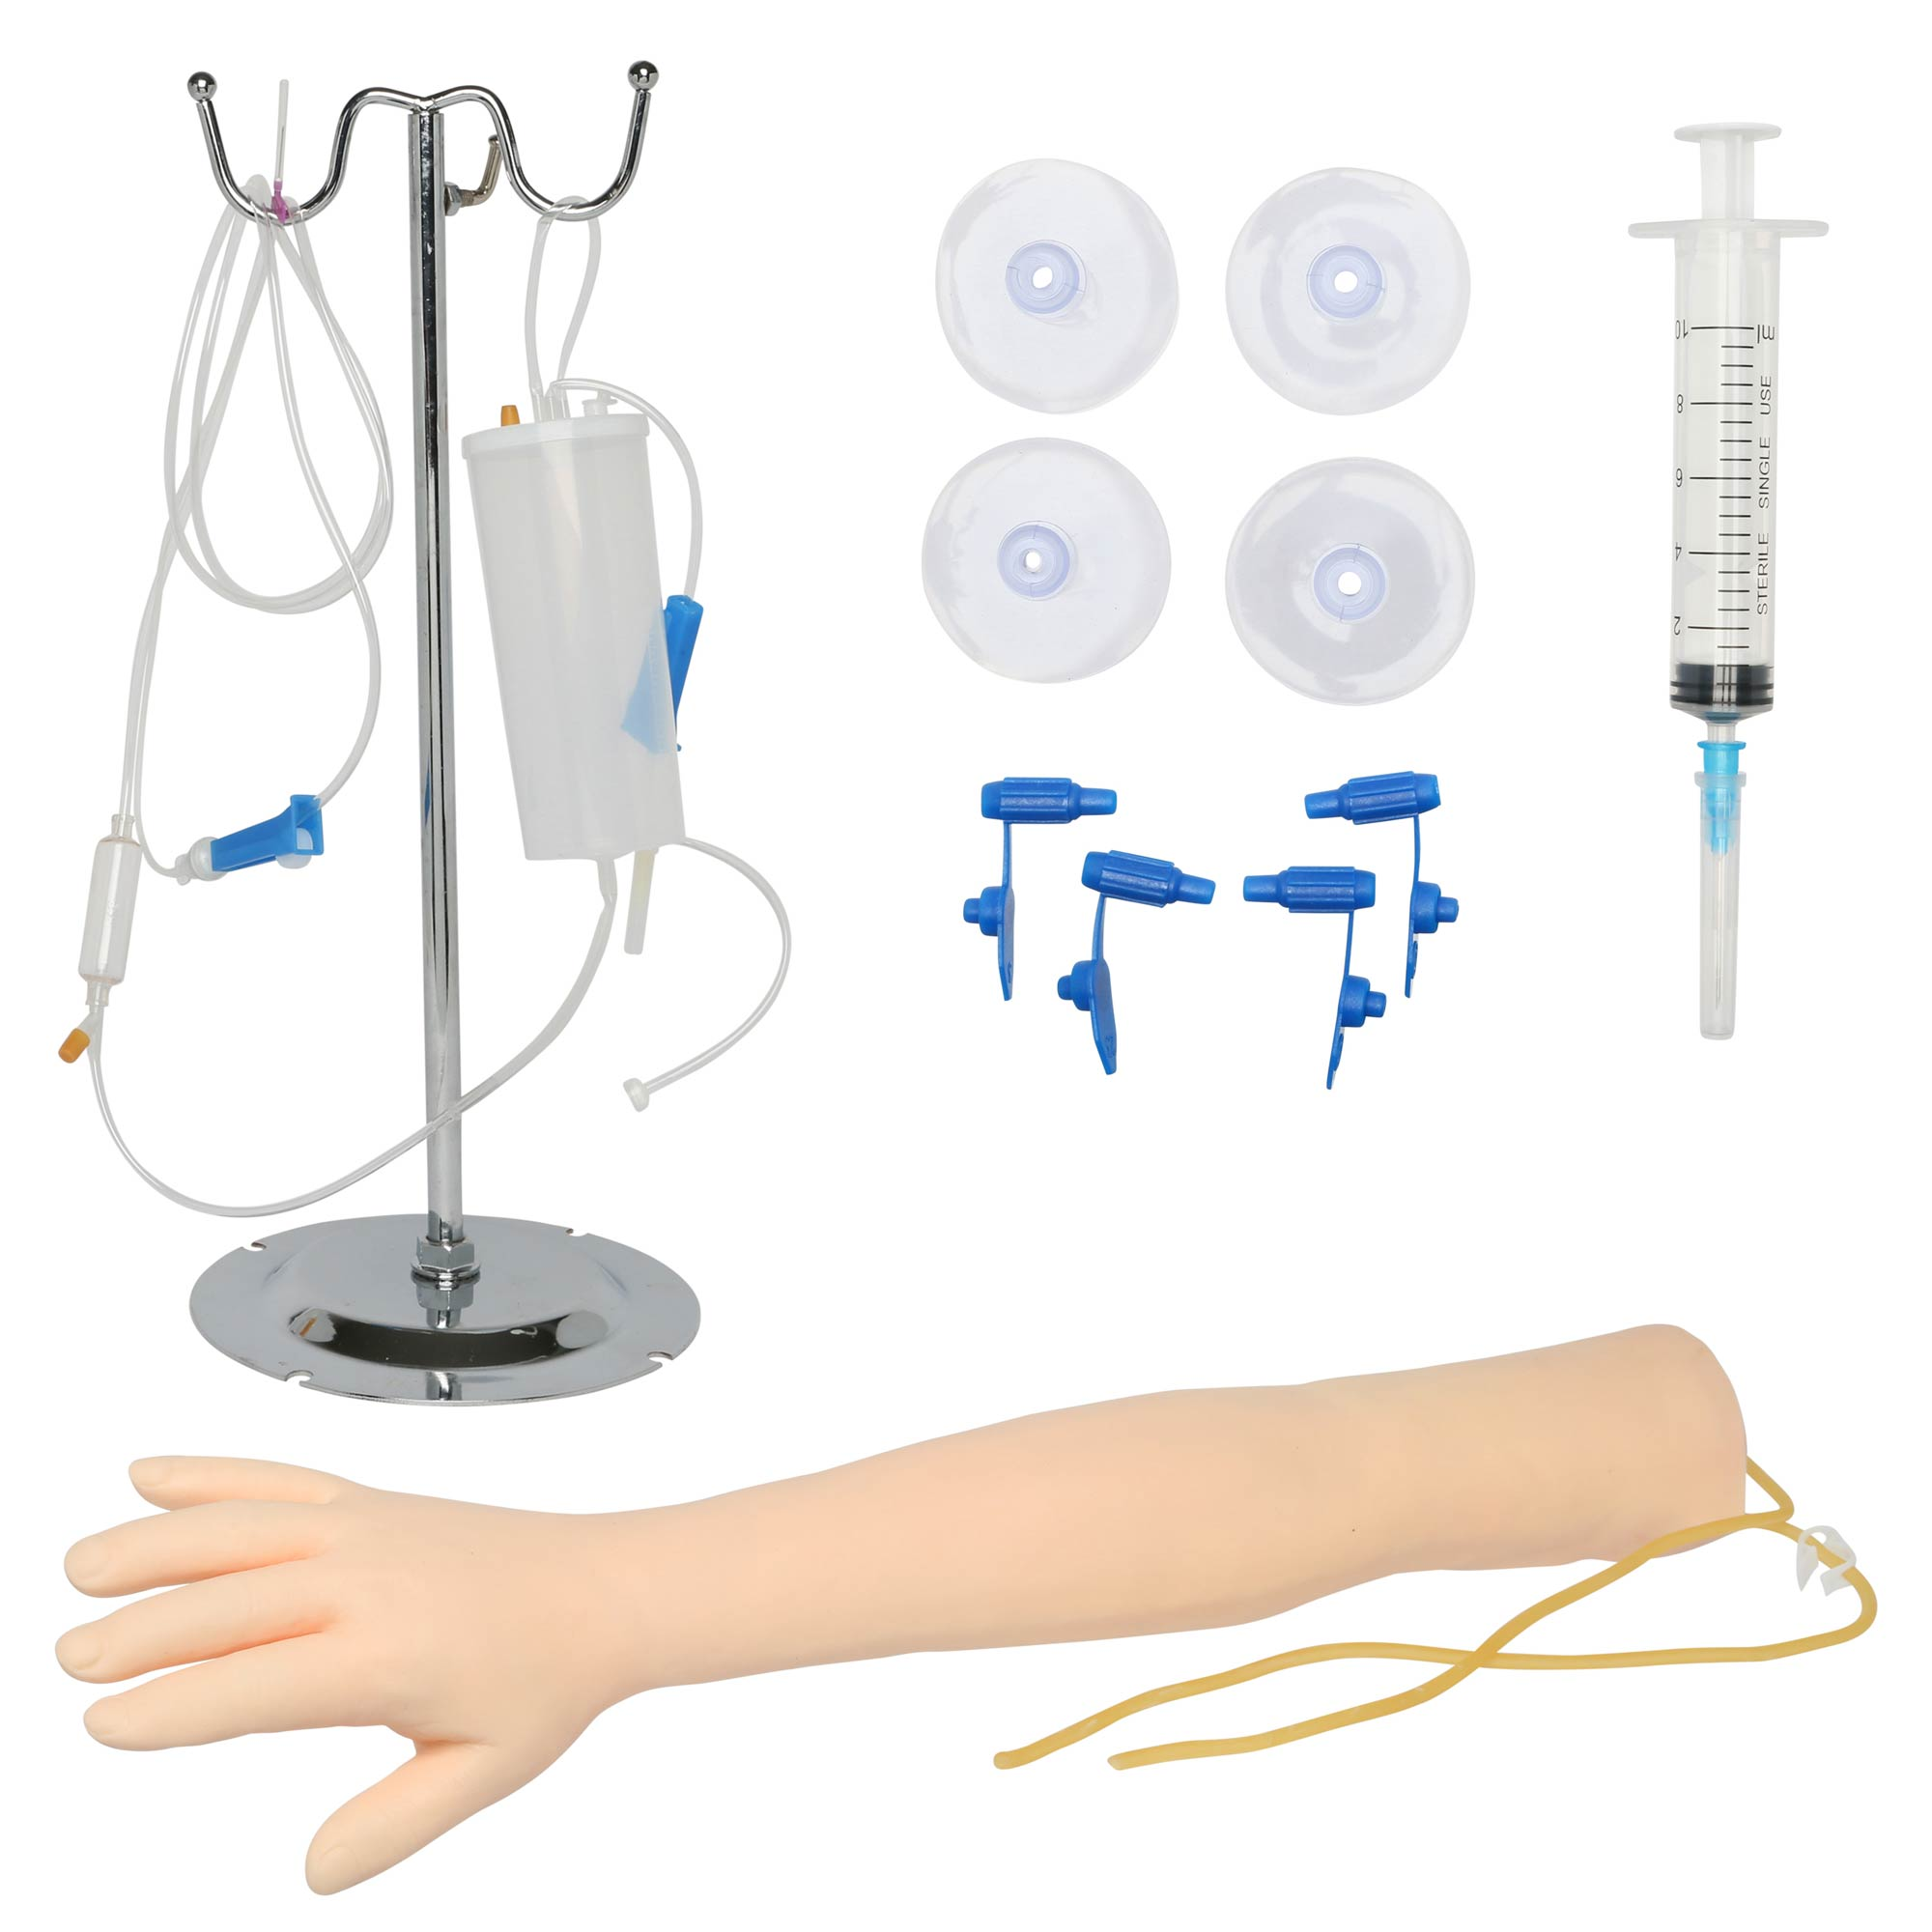 Iv And Phlebotomy Training Arm For Practicing Venipuncture Techniques